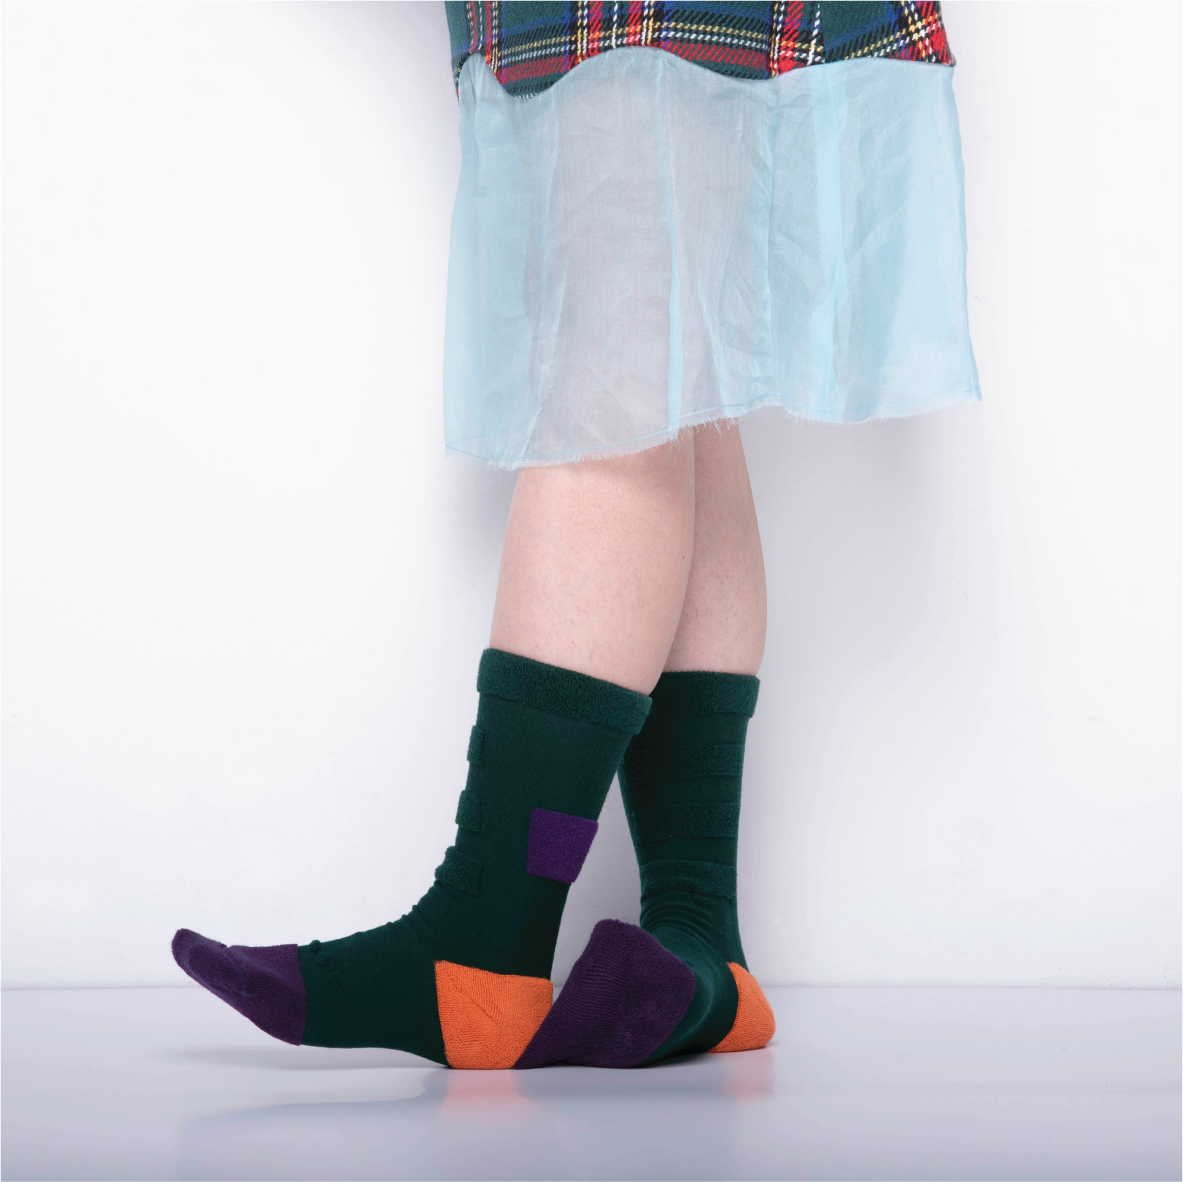 MY INNER BEAUTY: MINDA | Fern Green & Purple | Reversible Patterned Socks